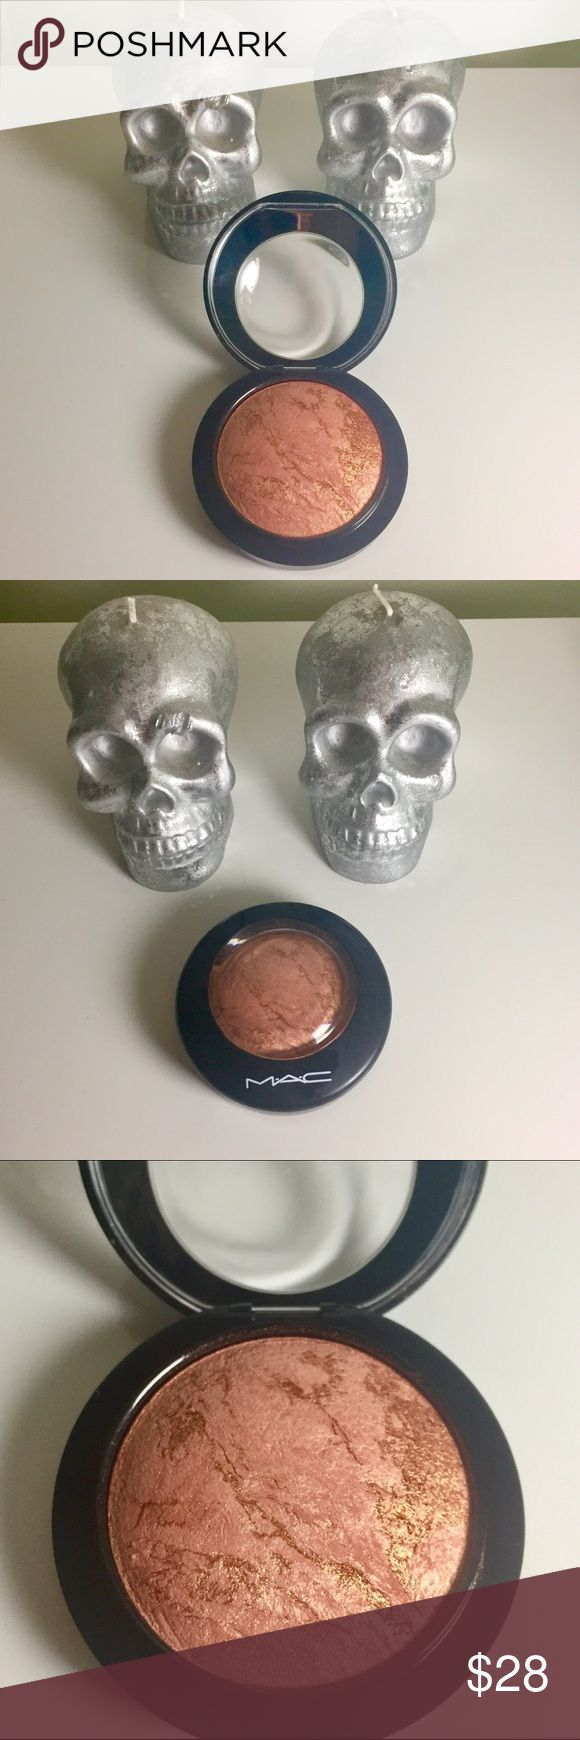 MAC Cheeky Bronze Mineralized Skin Finish MAC Cheeky Bronze Mineralized Skin Finish - Blush/Bronzer - used twice - authentic - soft coppery orange with golden shimmer - new glossy black packaging - includes protective plastic cover - .35 oz MAC Cosmetics Makeup Bronzer